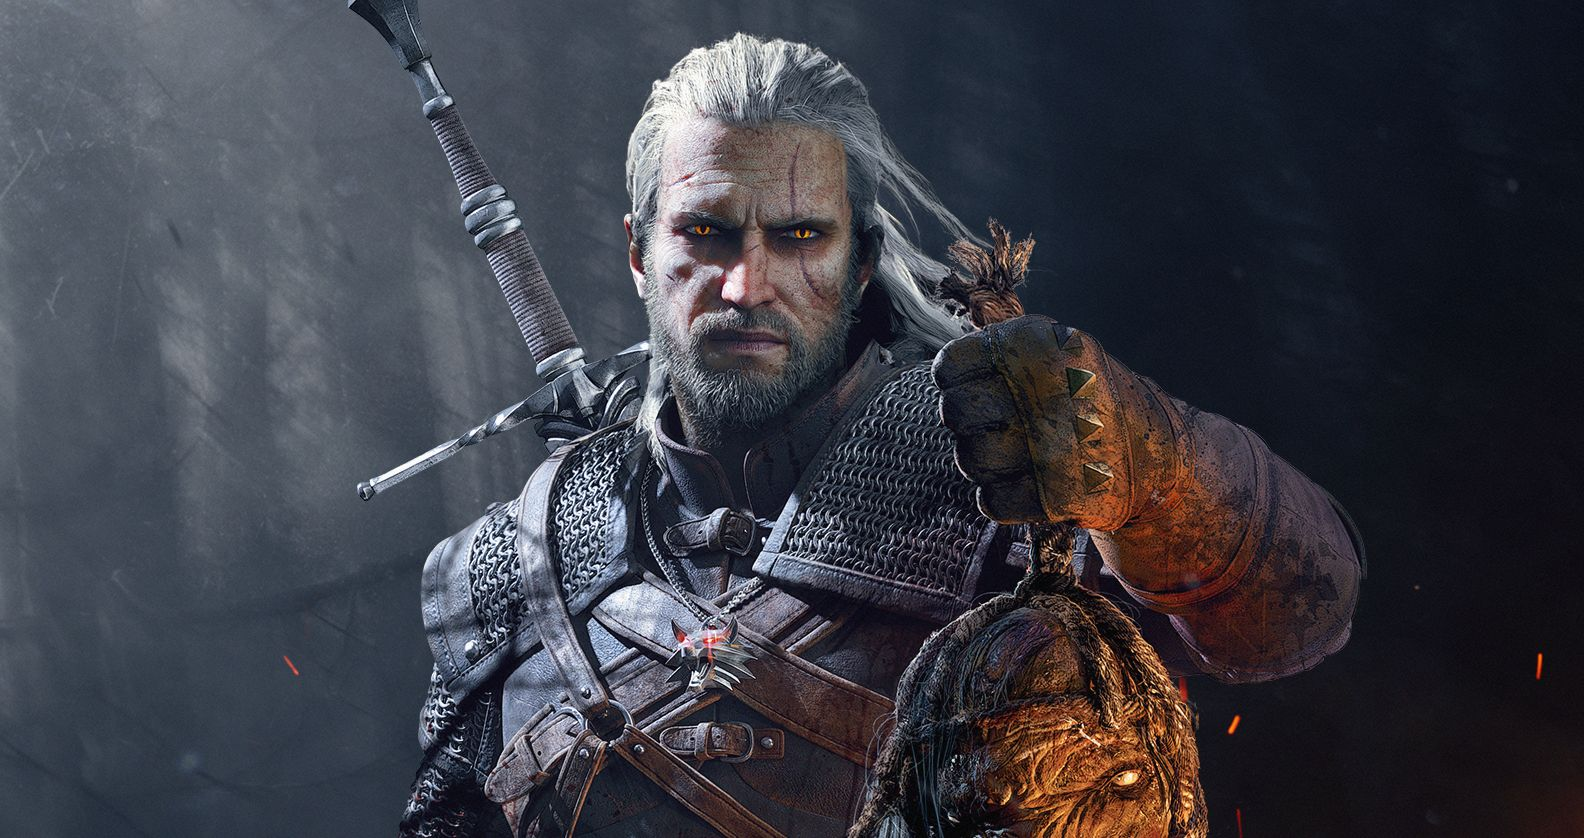 The Witcher 3 achieves new Steam record thanks to the Netflix show